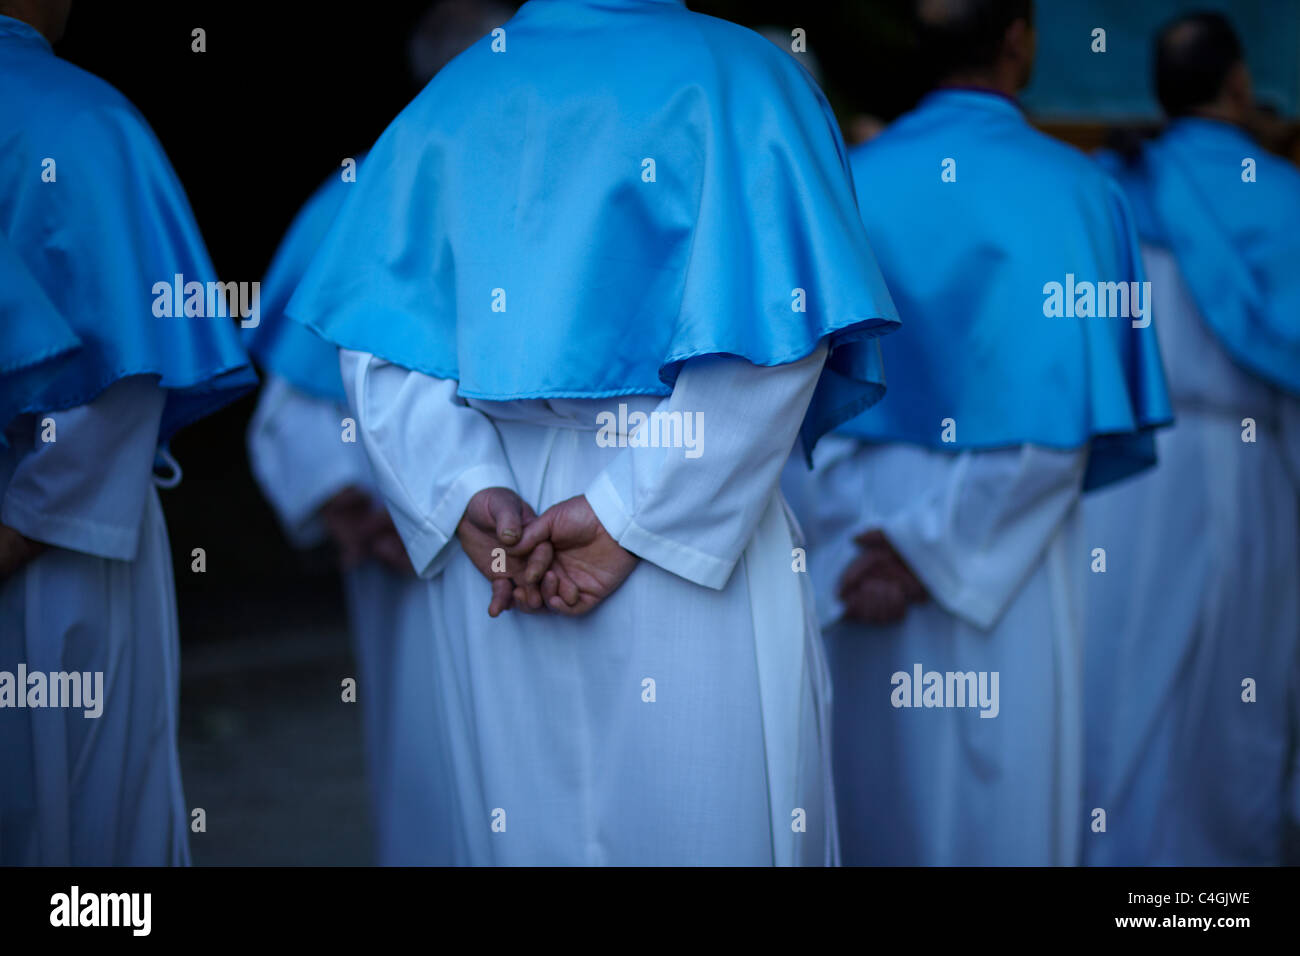 procession at St Eutizio Abbey, Umbria, Italy - Stock Image